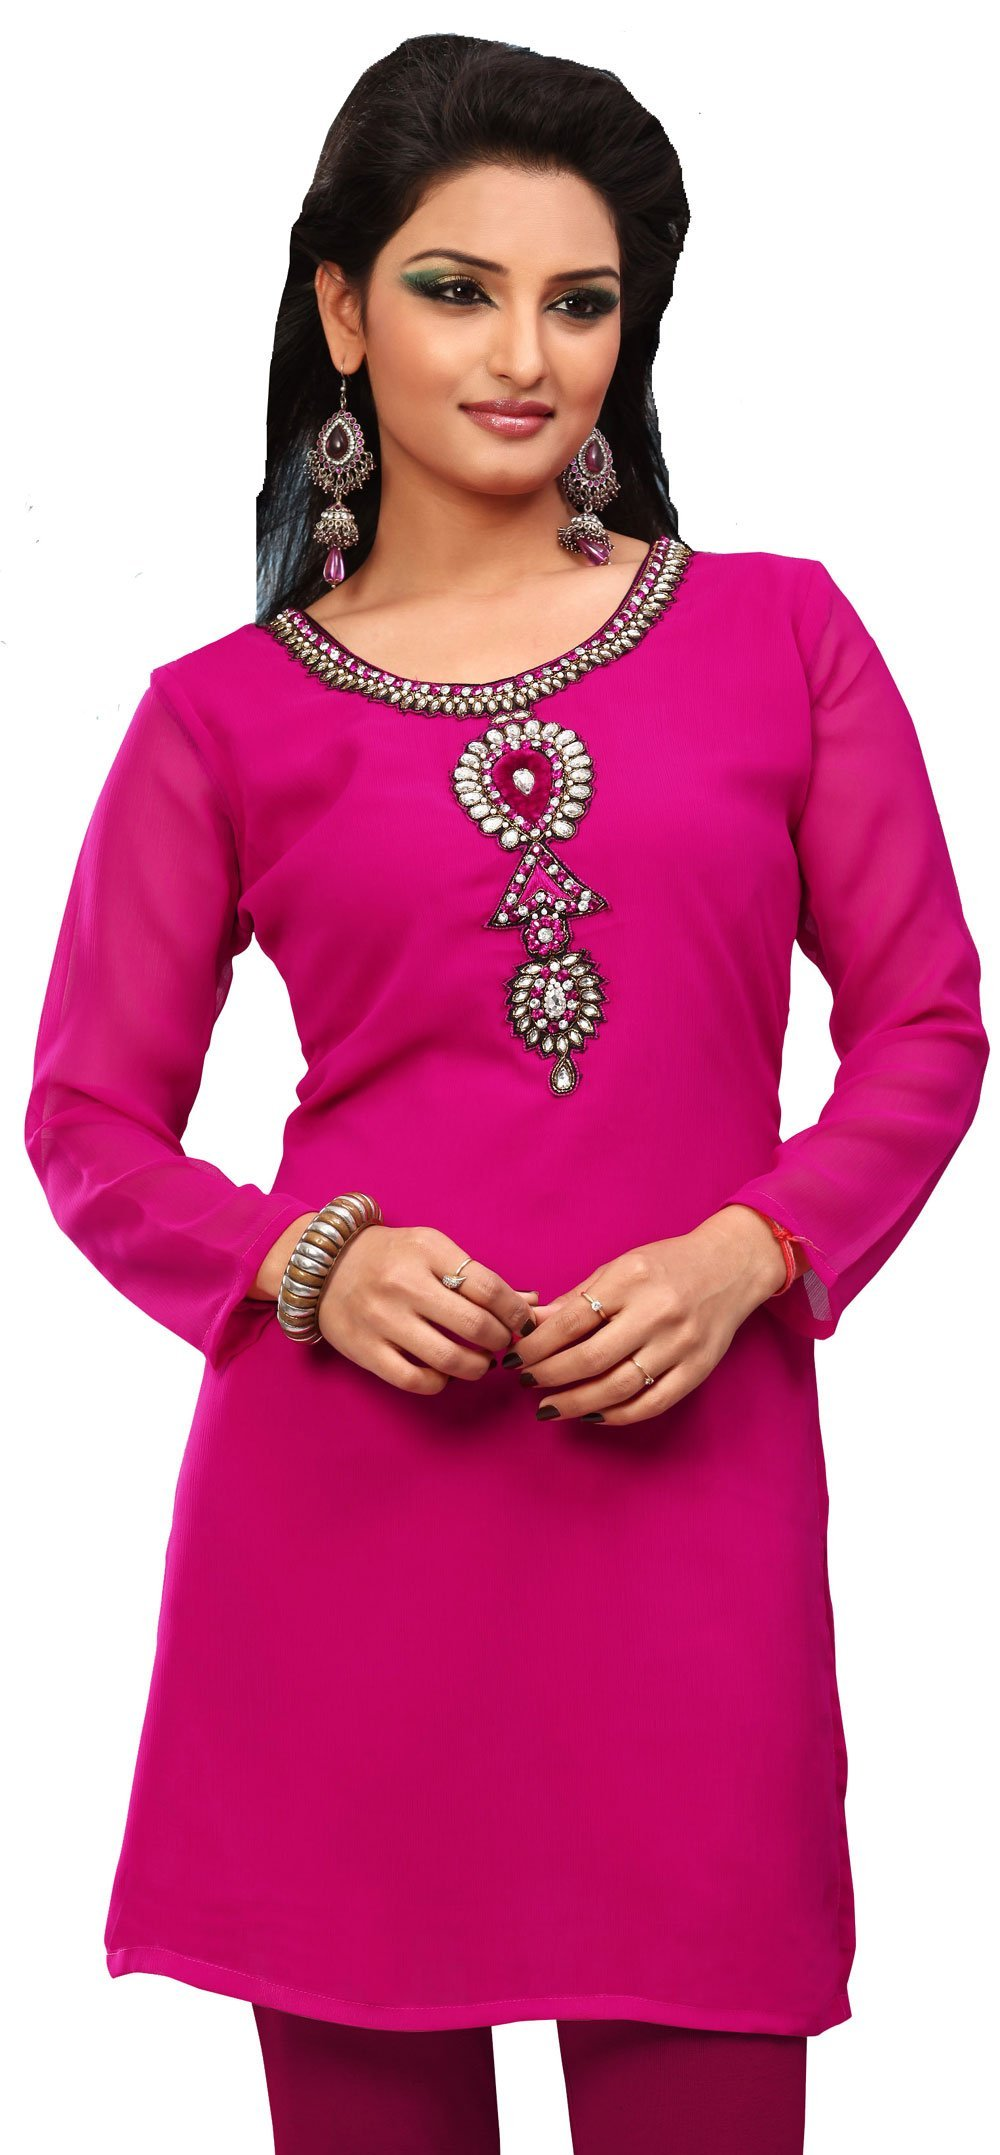 Indian Kurti Top Tunic Party Dress Womens Blouse India Clothes (Pink, L)